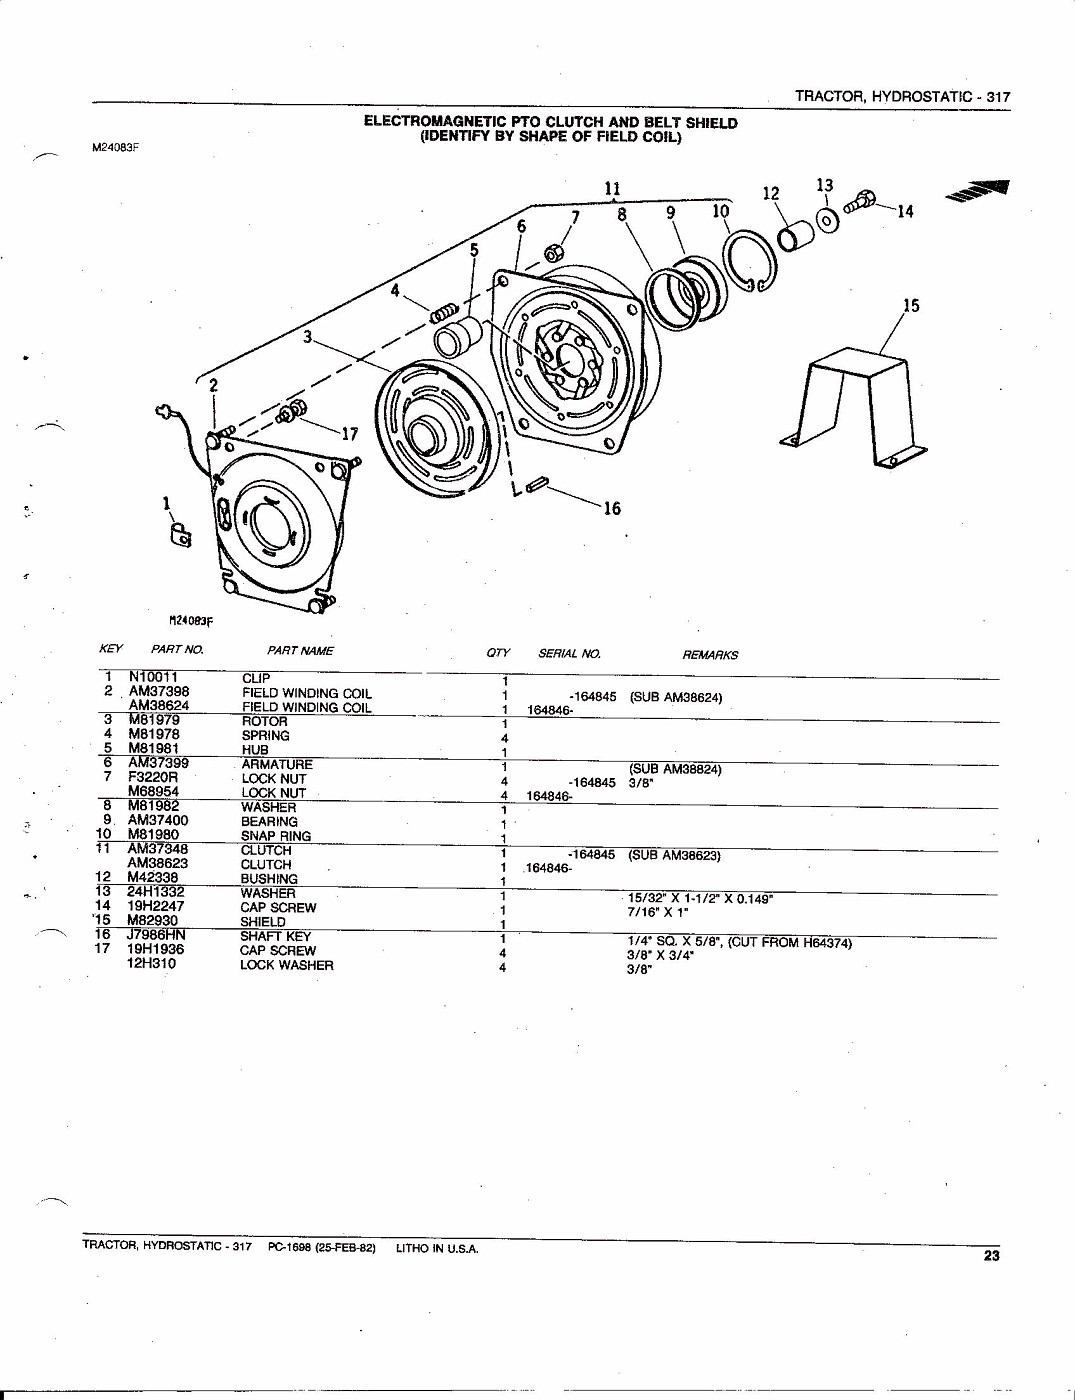 Photo: John Deere 317 Hydrostatic Tractor Parts Catalog